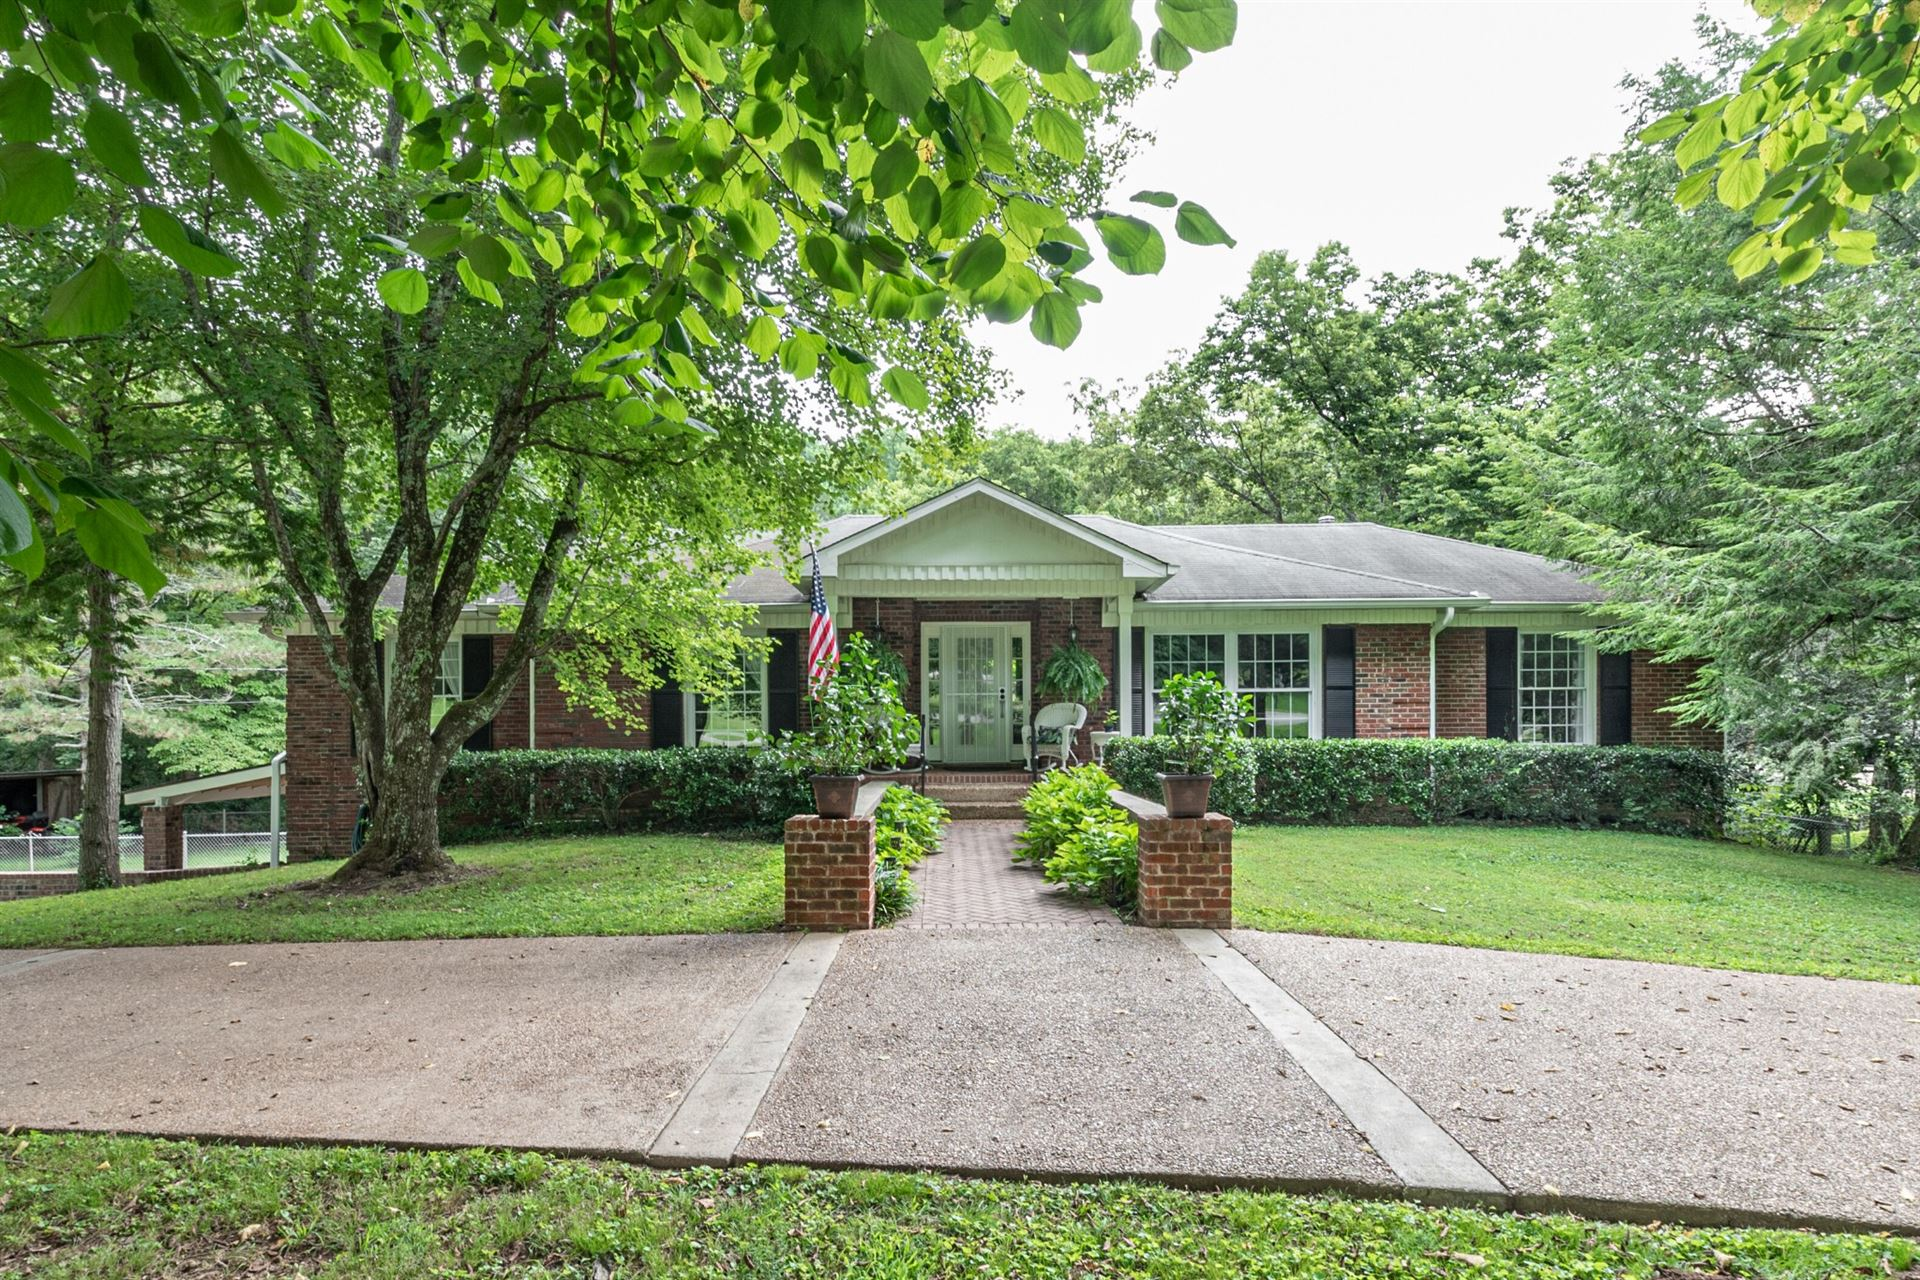 Photo of 2041 Sunny Side Dr, Brentwood, TN 37027 (MLS # 2283549)